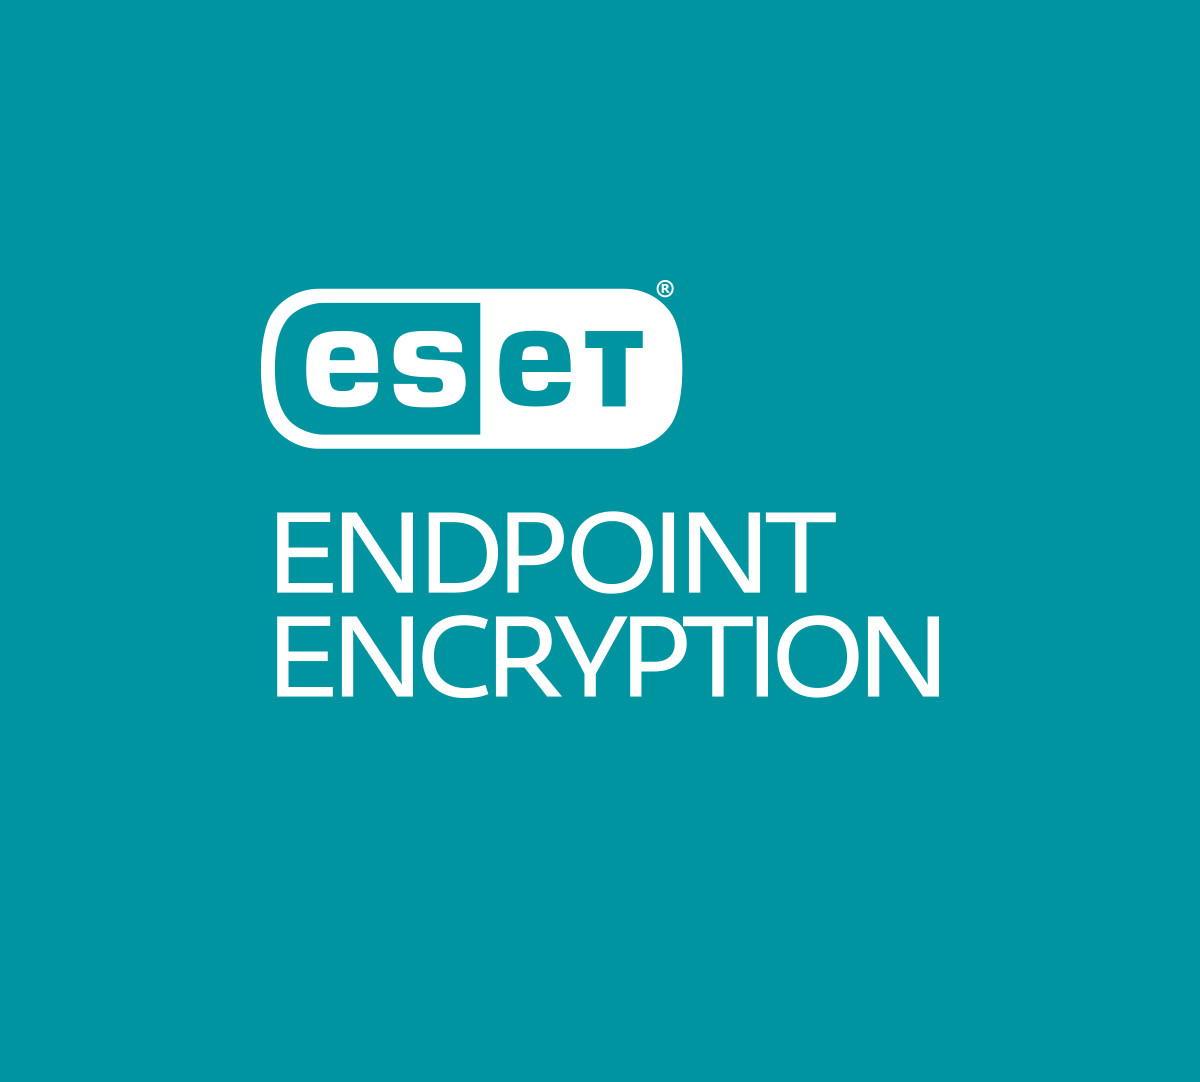 ESET Endpoint Encryprtion